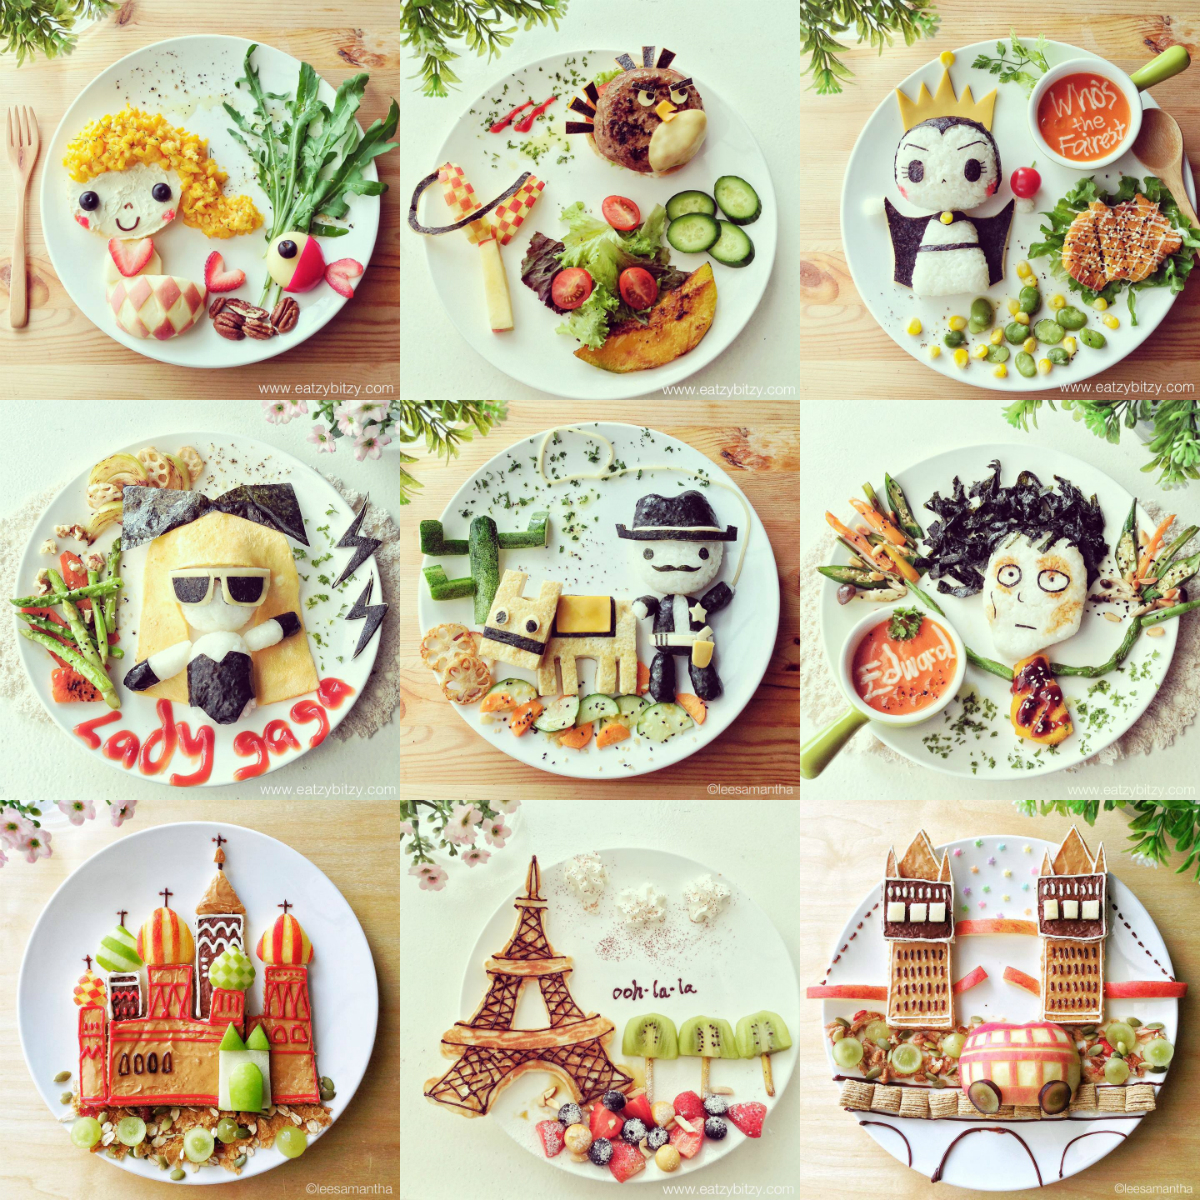 45+ Interesting & Creative Food Art Design Ideas